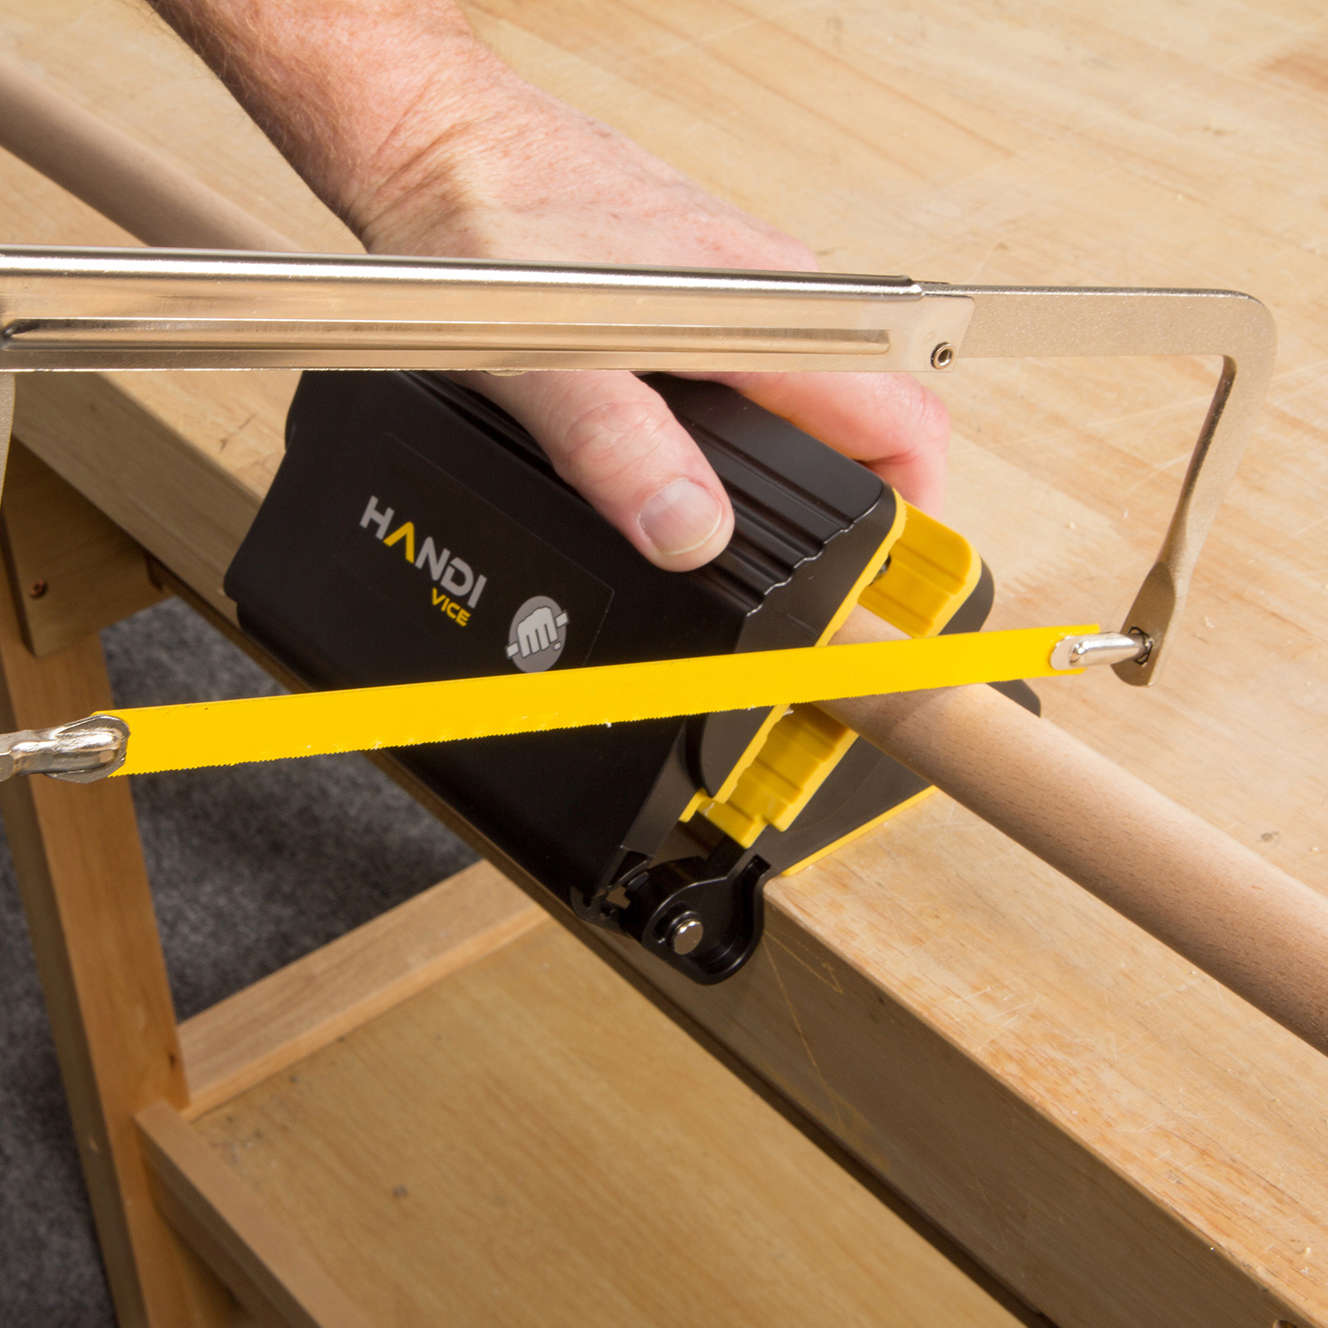 HANDI VICE Portable Clamping Device